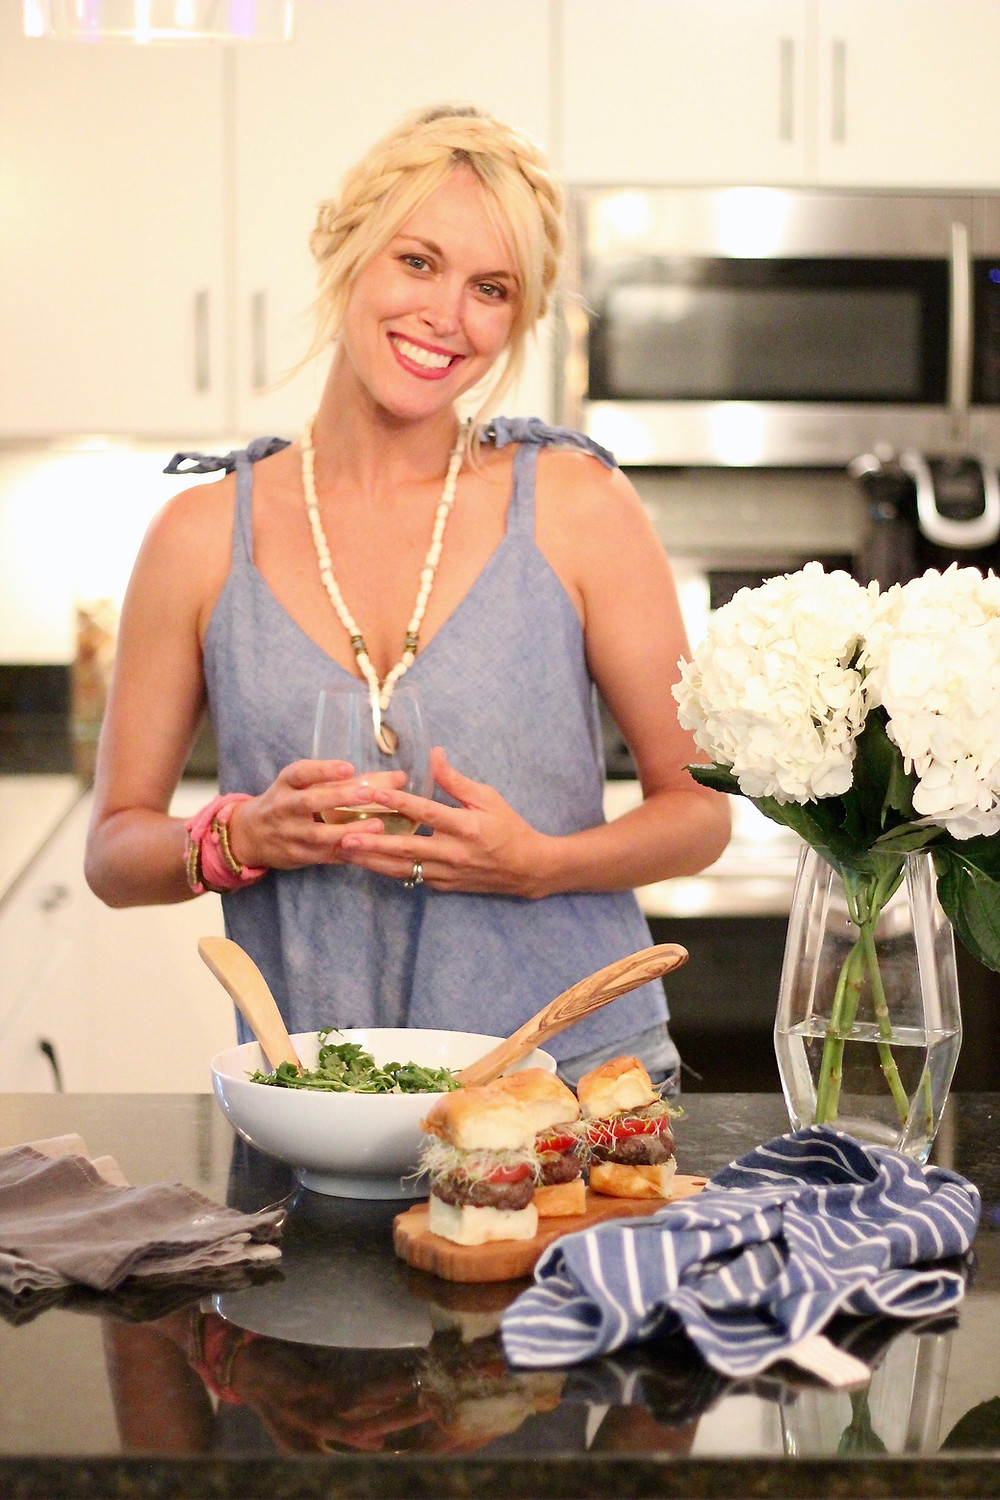 Blogger Brooke Williams smiles as she gets ready to enjoy a summer dinner from The Fresh Market